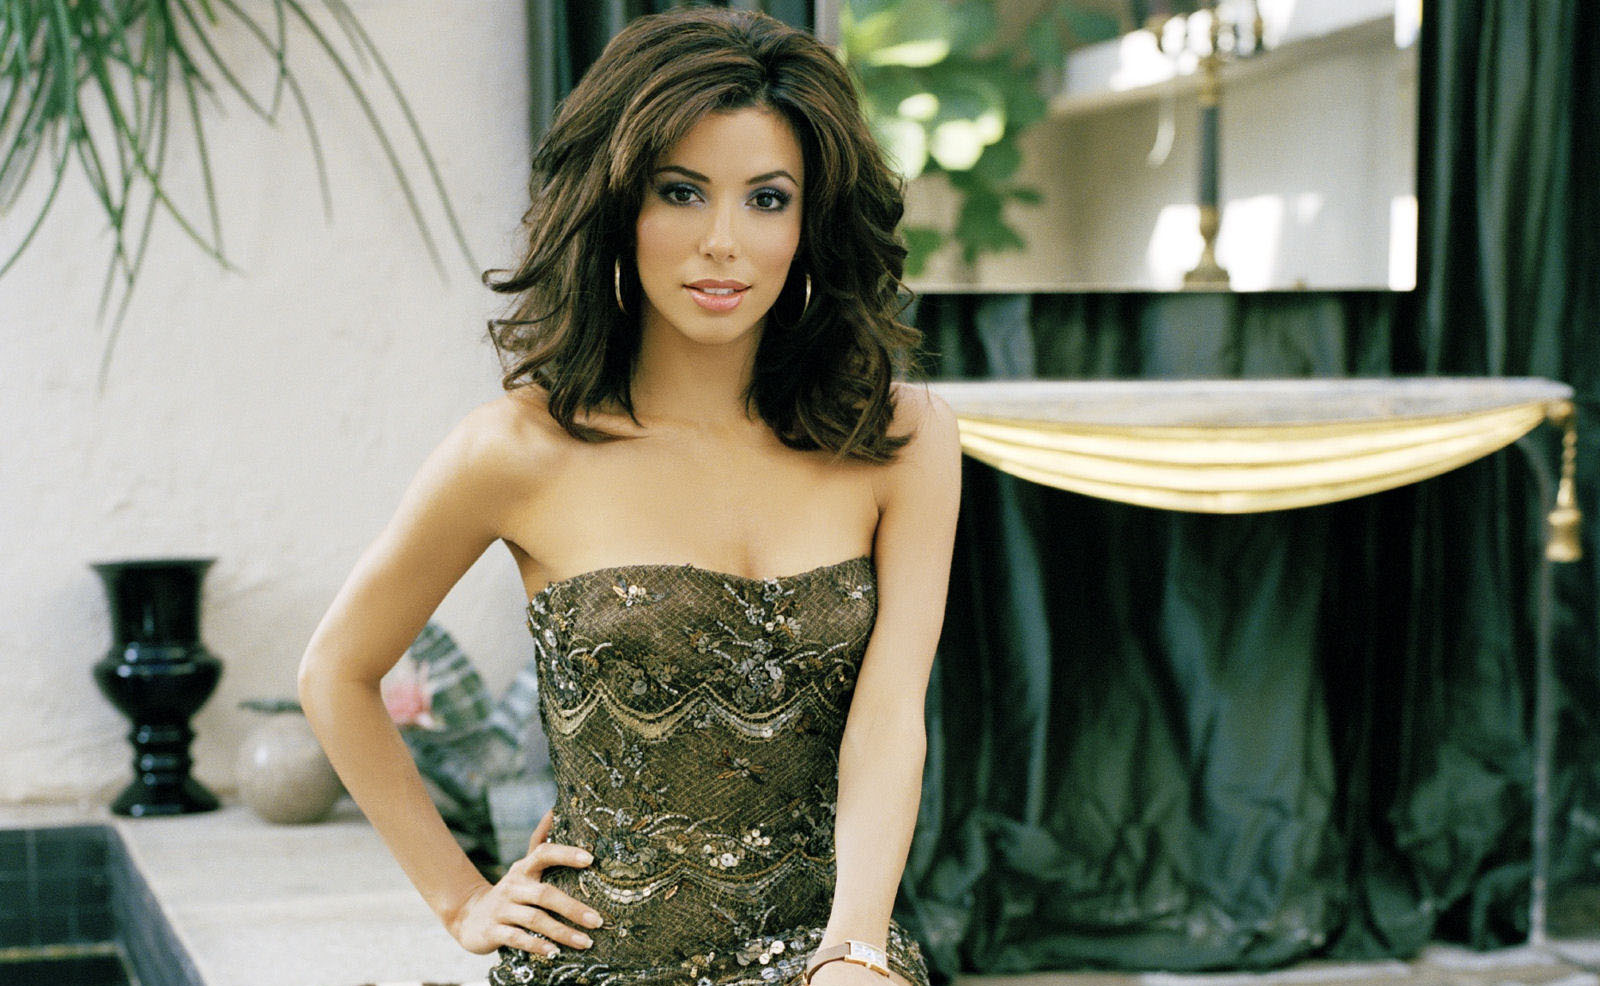 Nice Eva Longoria Romantic And Stylish Face Look With Hot Background Free Desktop Hd Mobile Wallpaper